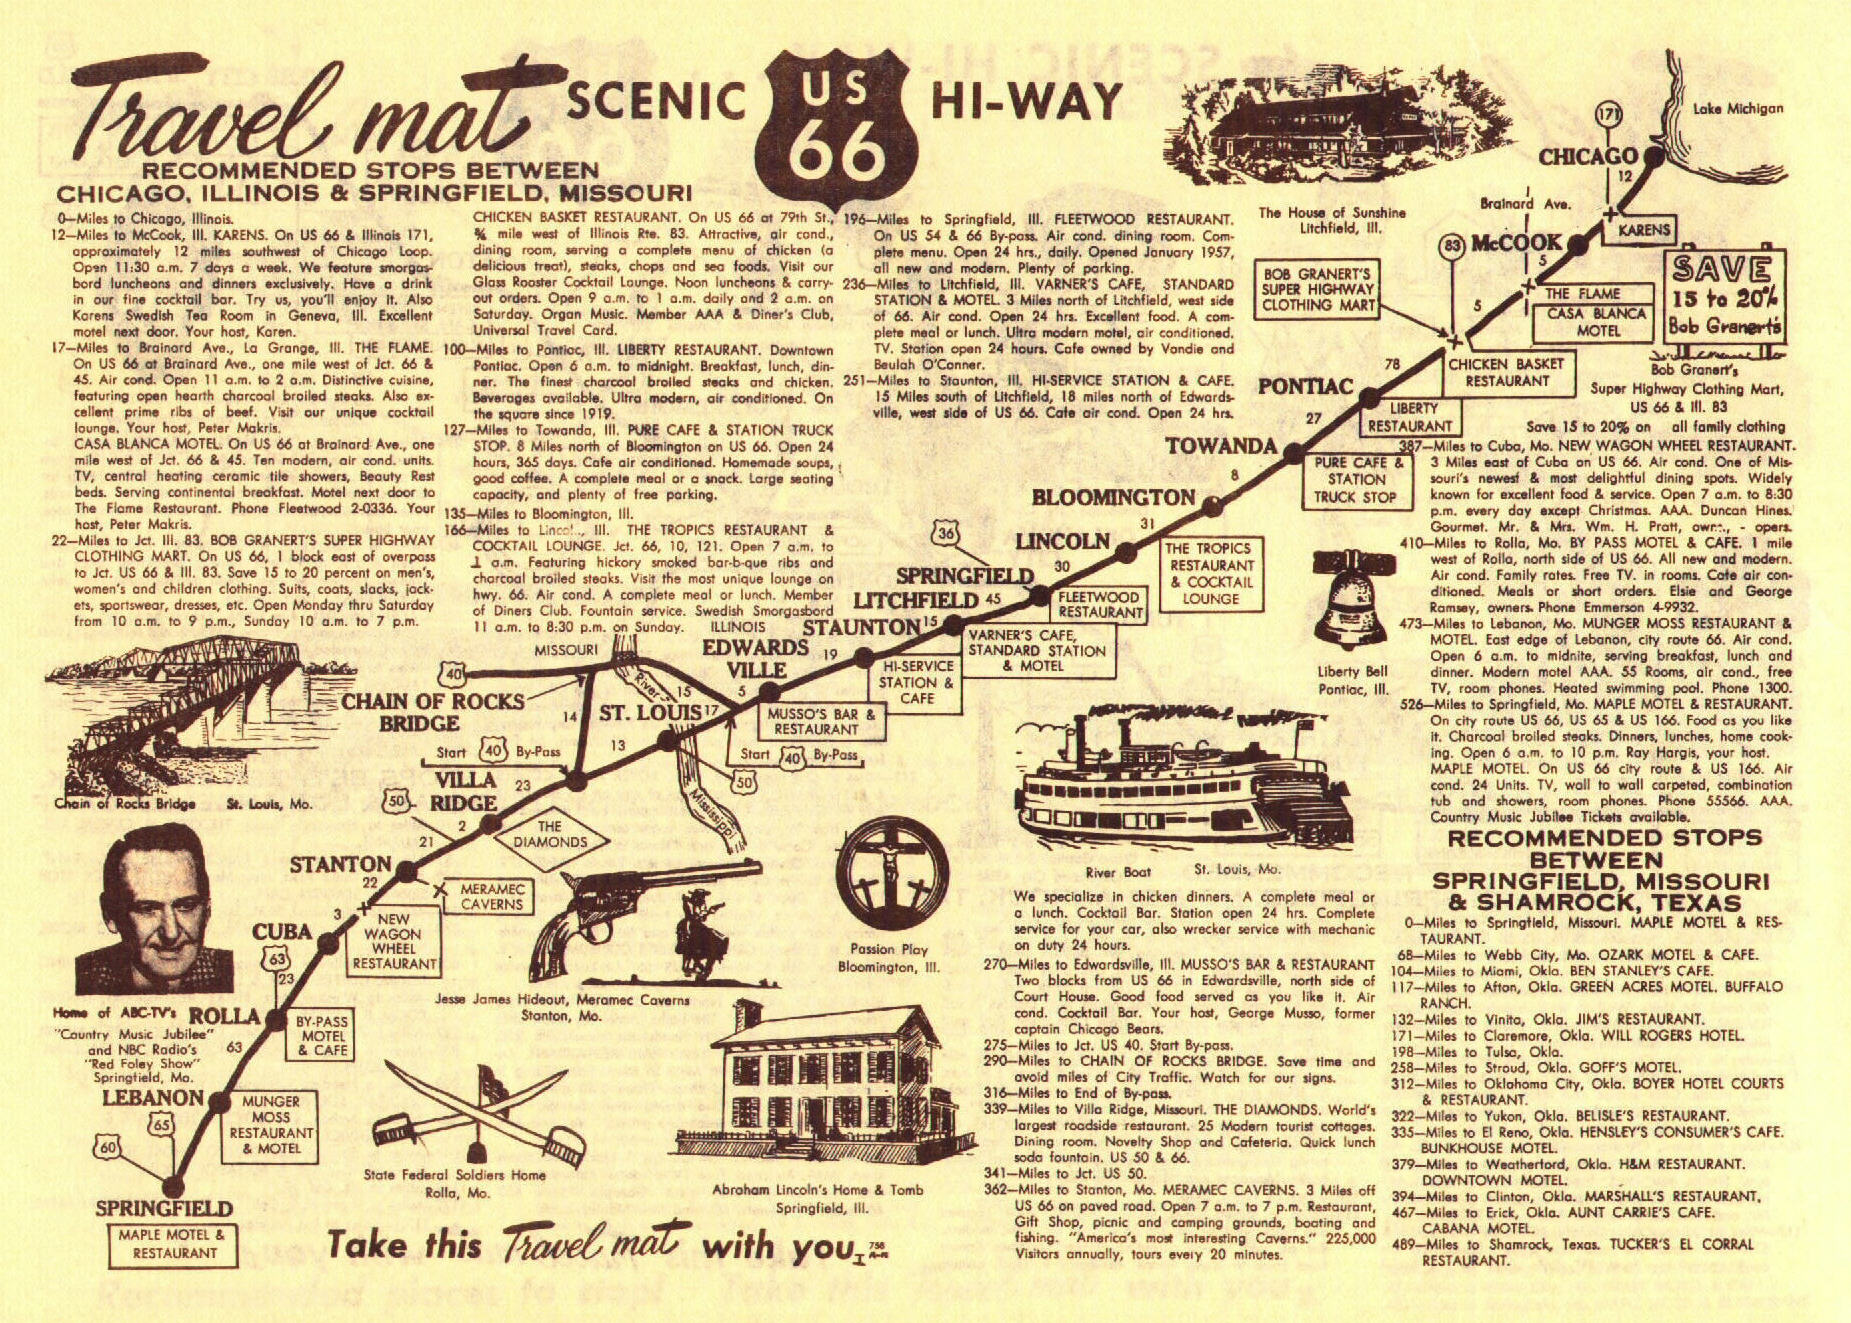 Route 66  Travel Map, c. 1959, Chicago to Springfield, MO